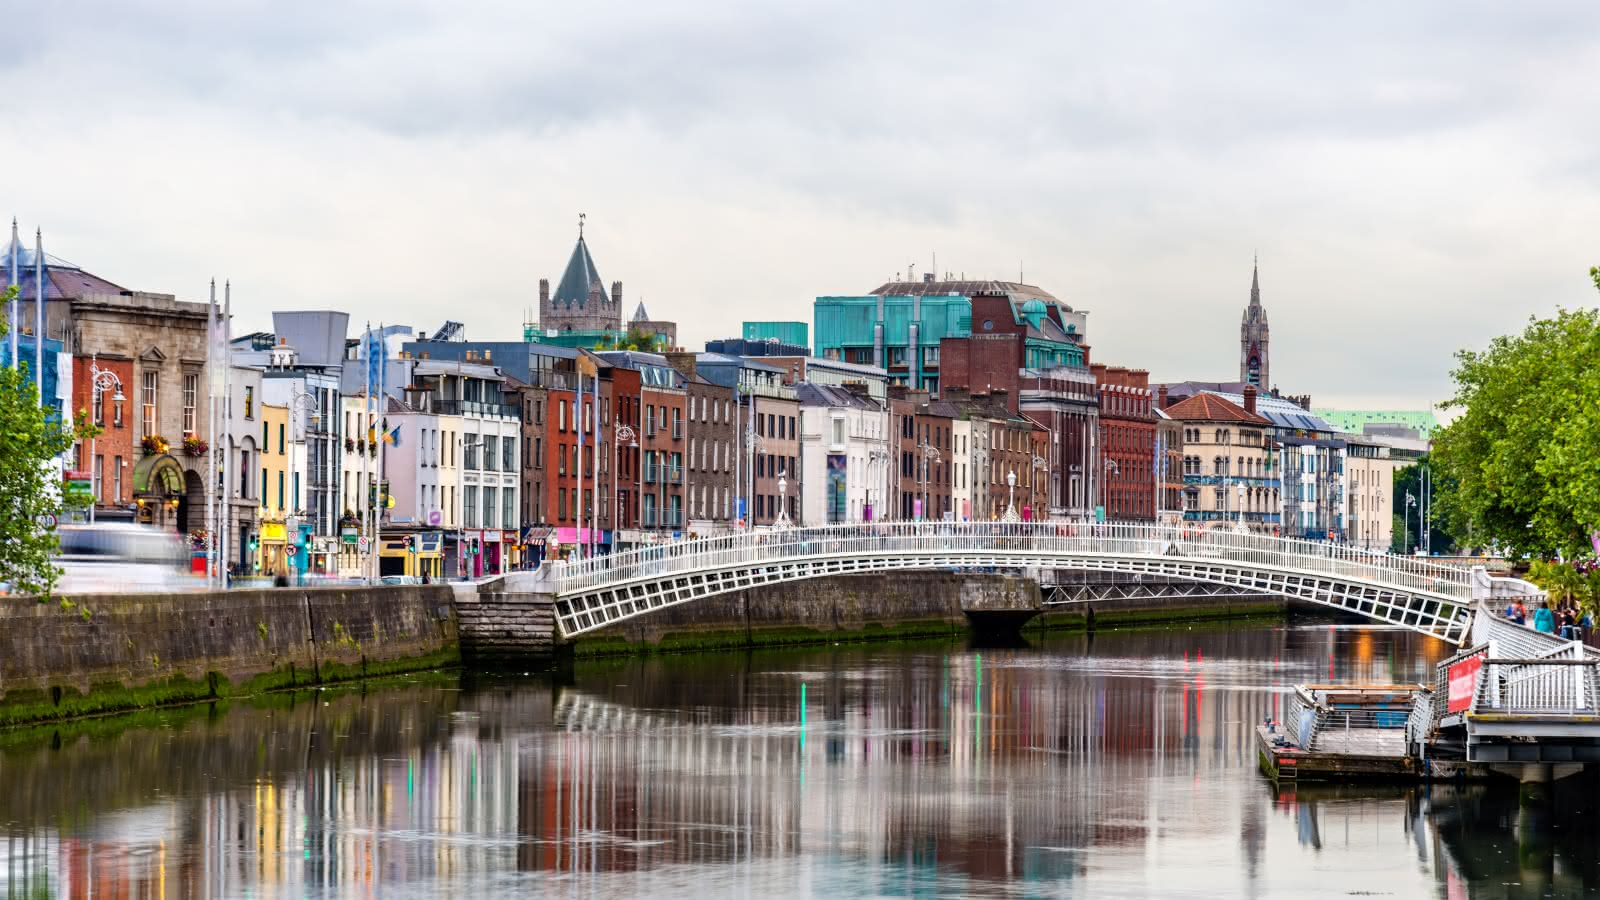 The famous Ha'penny Bridge in Dublin during a SANDEMANs walking tour